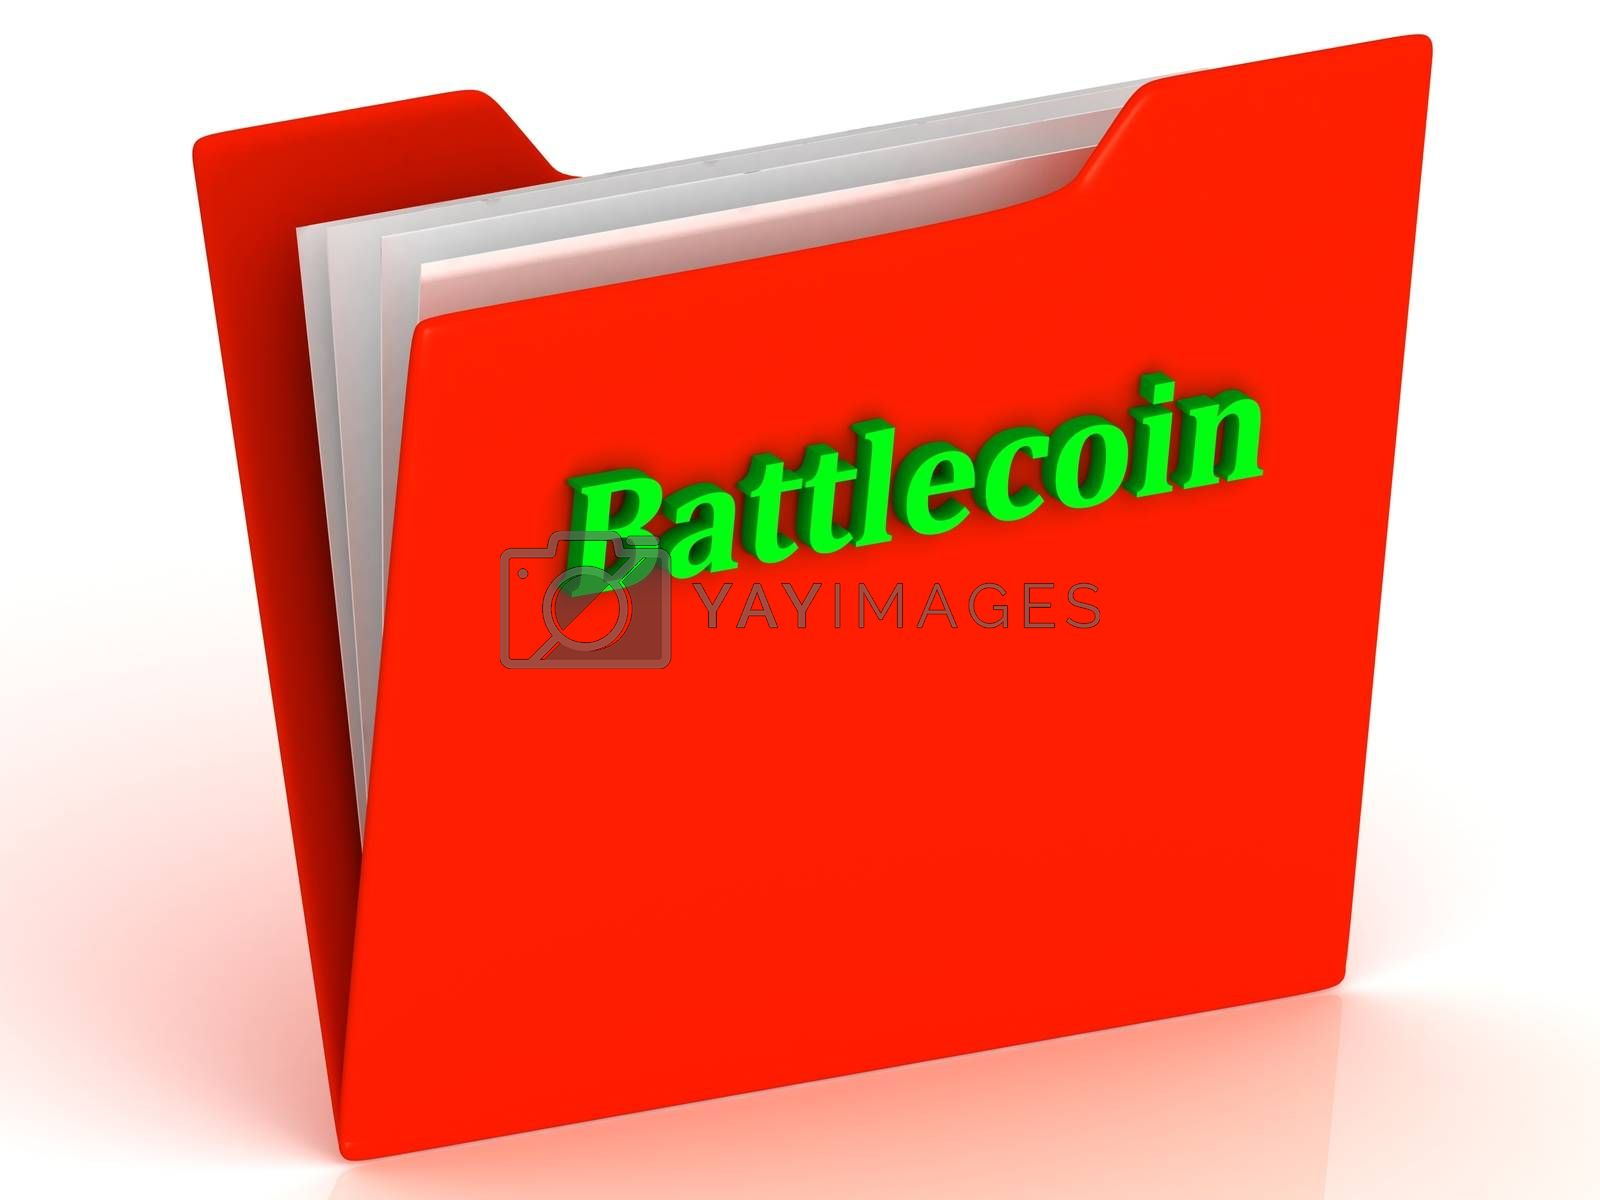 Battlecoin- bright green letters on a gold folder on a white background